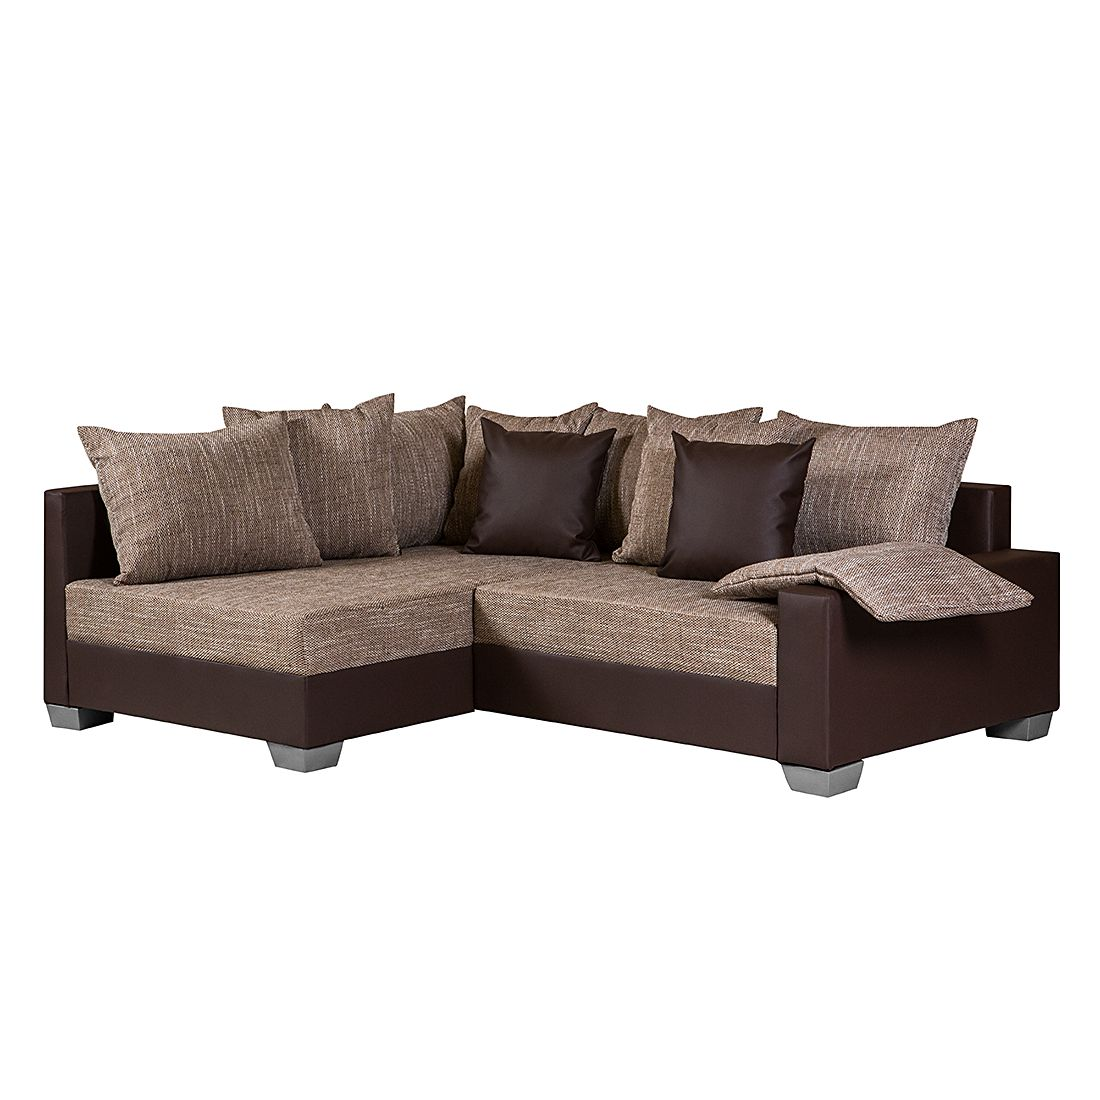 ecksofa venus kunstleder dunkel braun webstoff braun ottomane davorstehend links mit. Black Bedroom Furniture Sets. Home Design Ideas